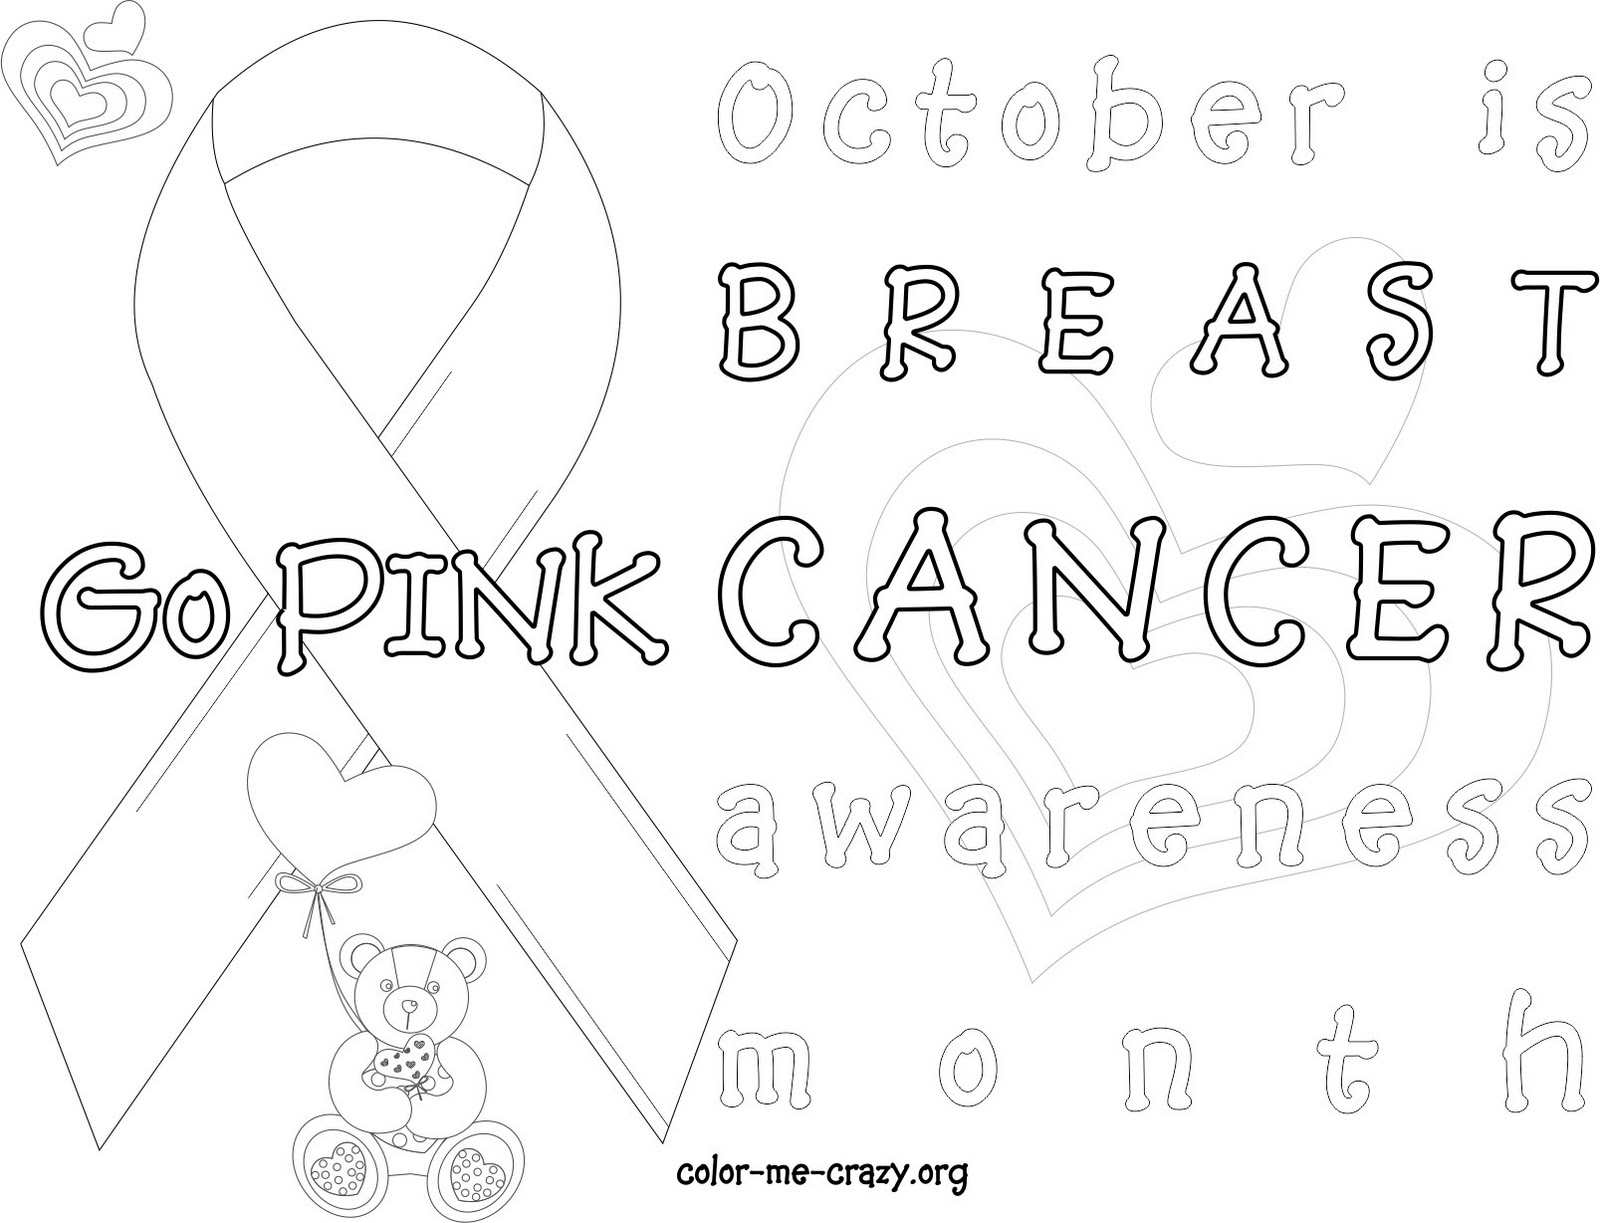 free breast cancer coloring pages | ColorMeCrazy.org: October 2011